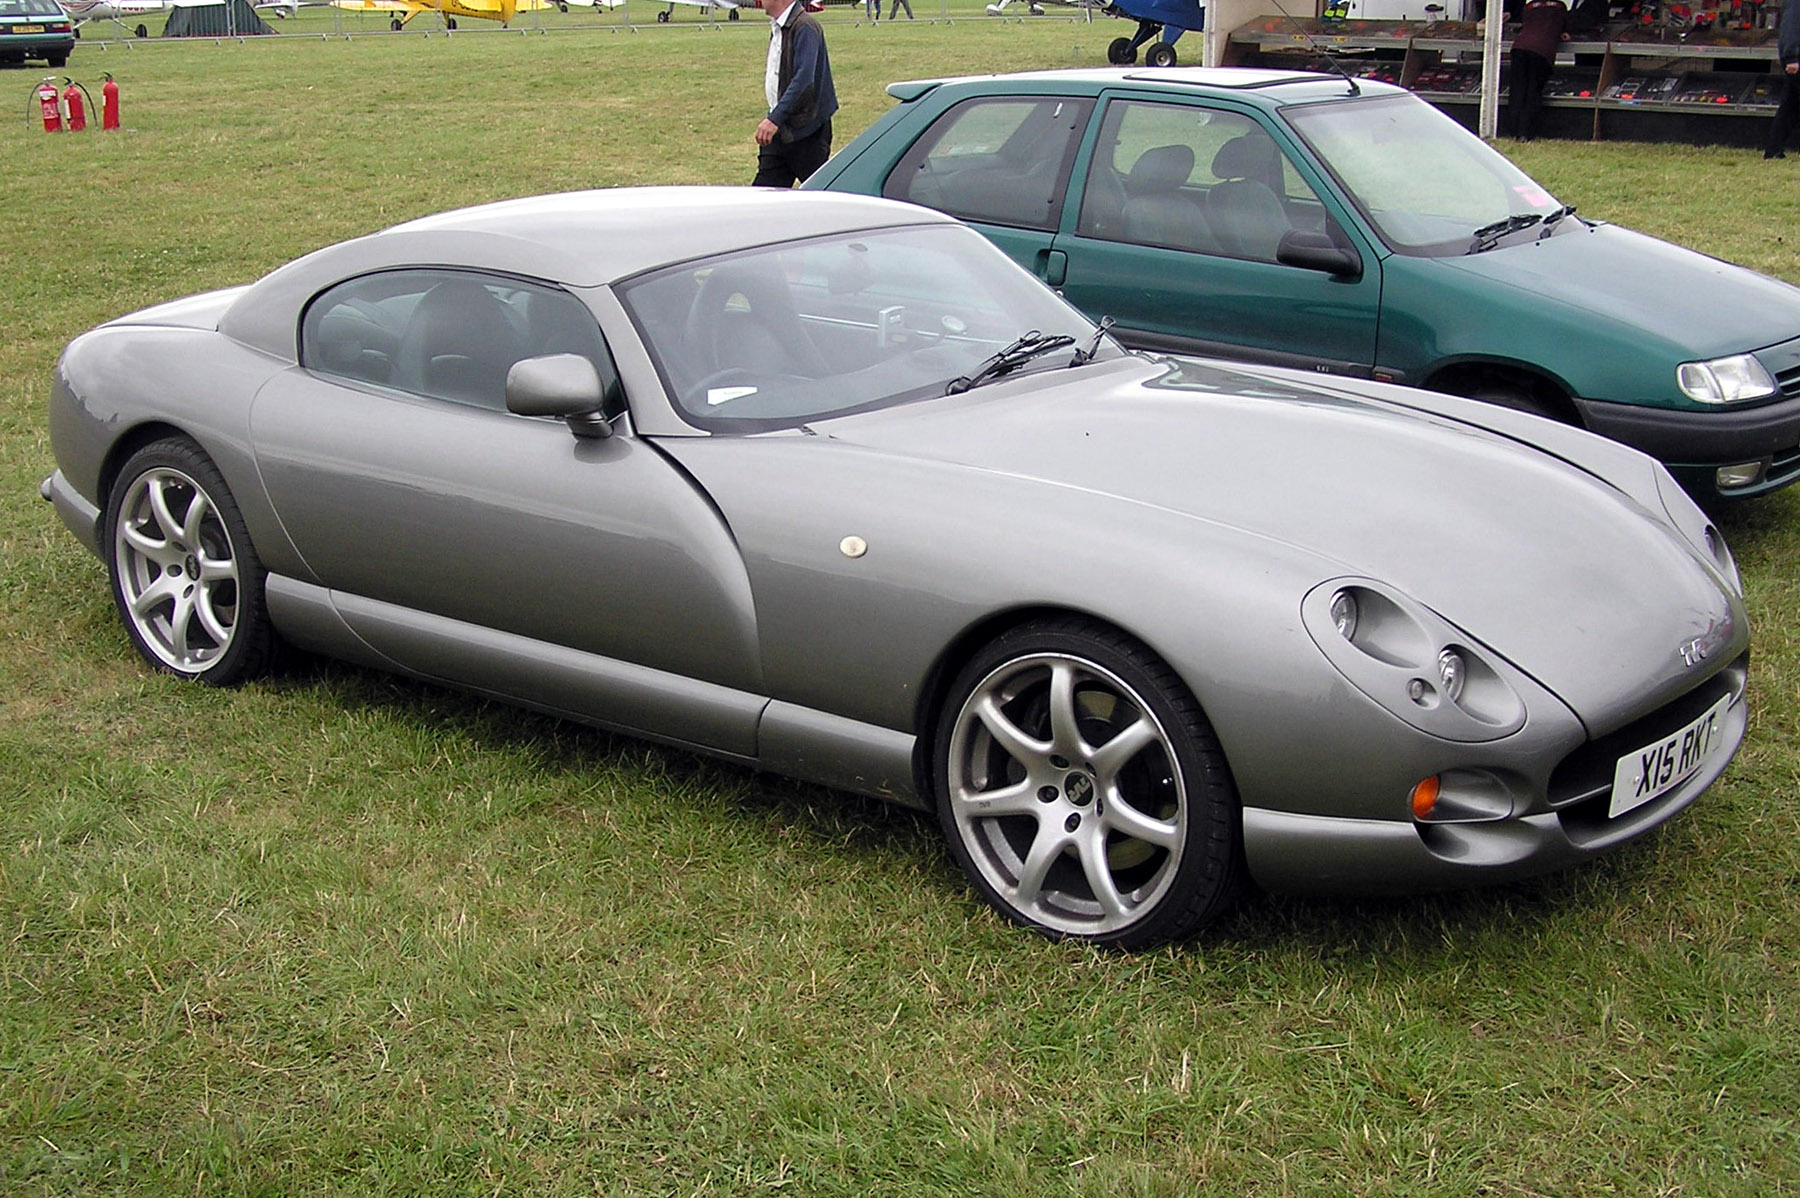 Tvr convertible photo - 2